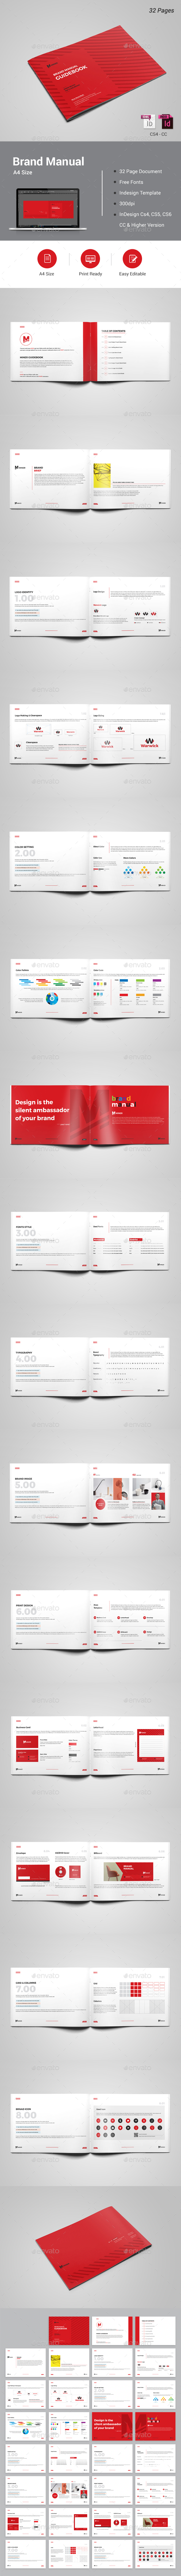 GraphicRiver Brand Manual 20508466